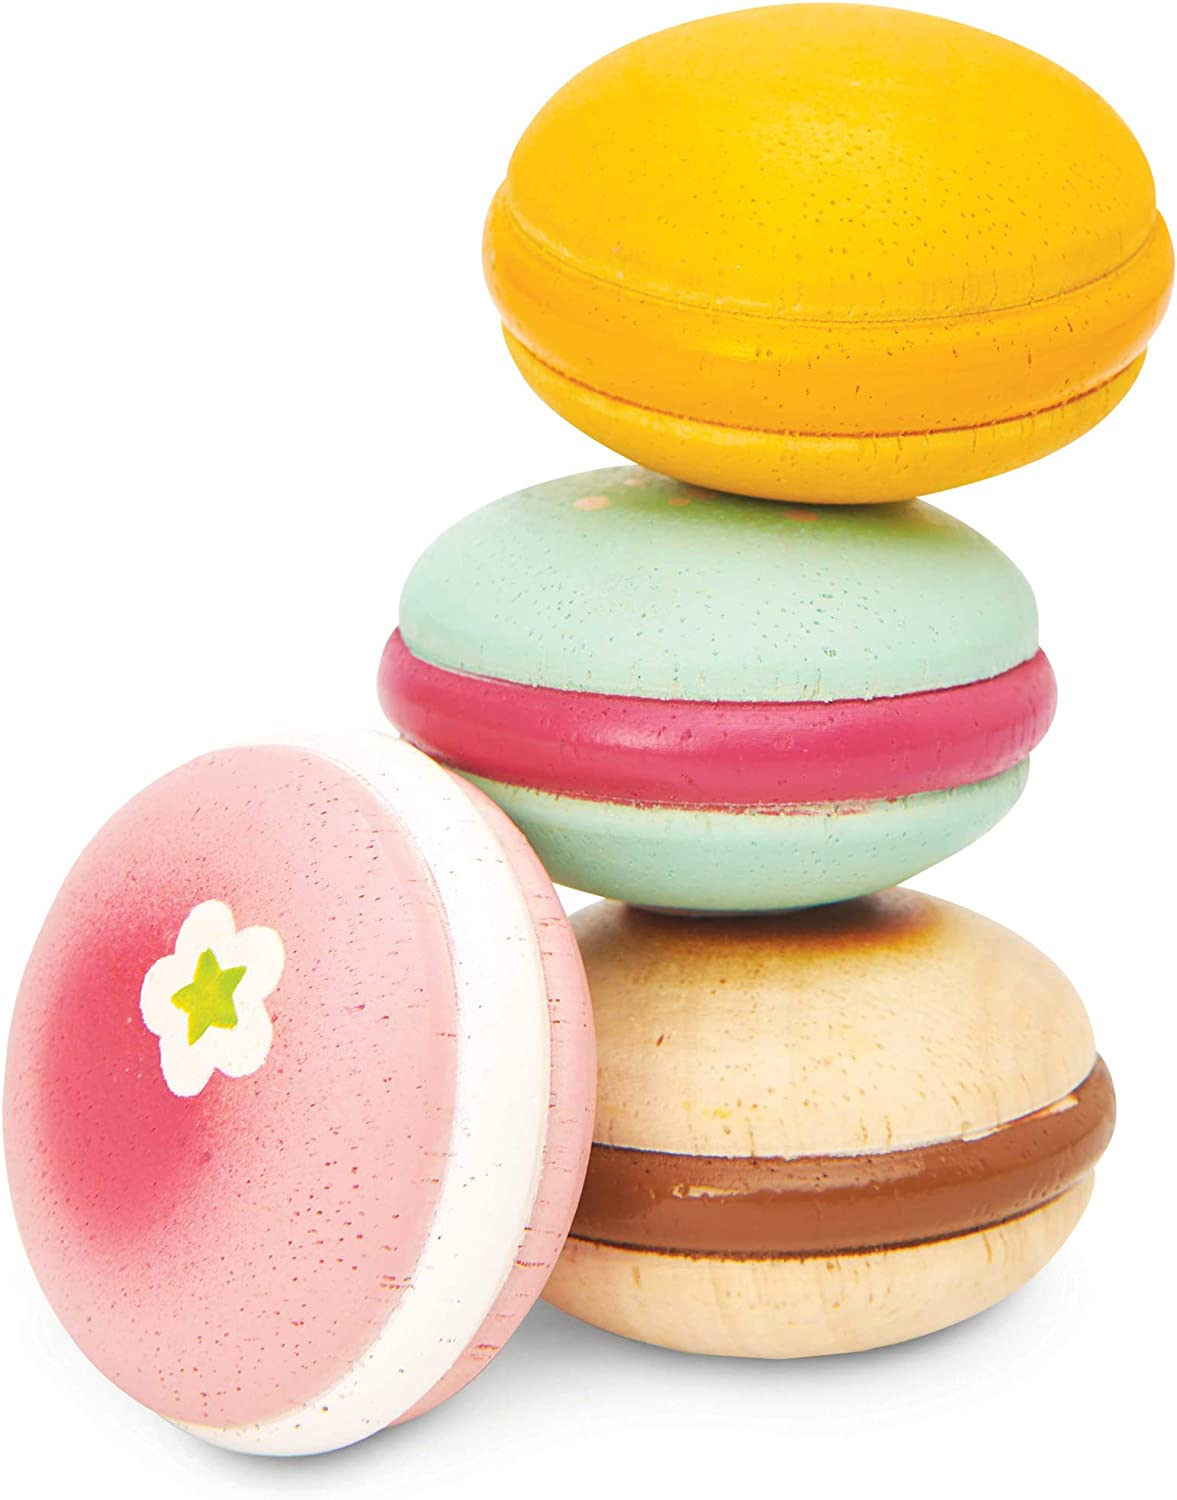 Le Toy Van - Educational Wooden Honeybake Pretend Play French Macarons Set Patisserie Toy Cakes   Girls Birthday Cake Or Afternoon Tea Role Play Toy (TV330)